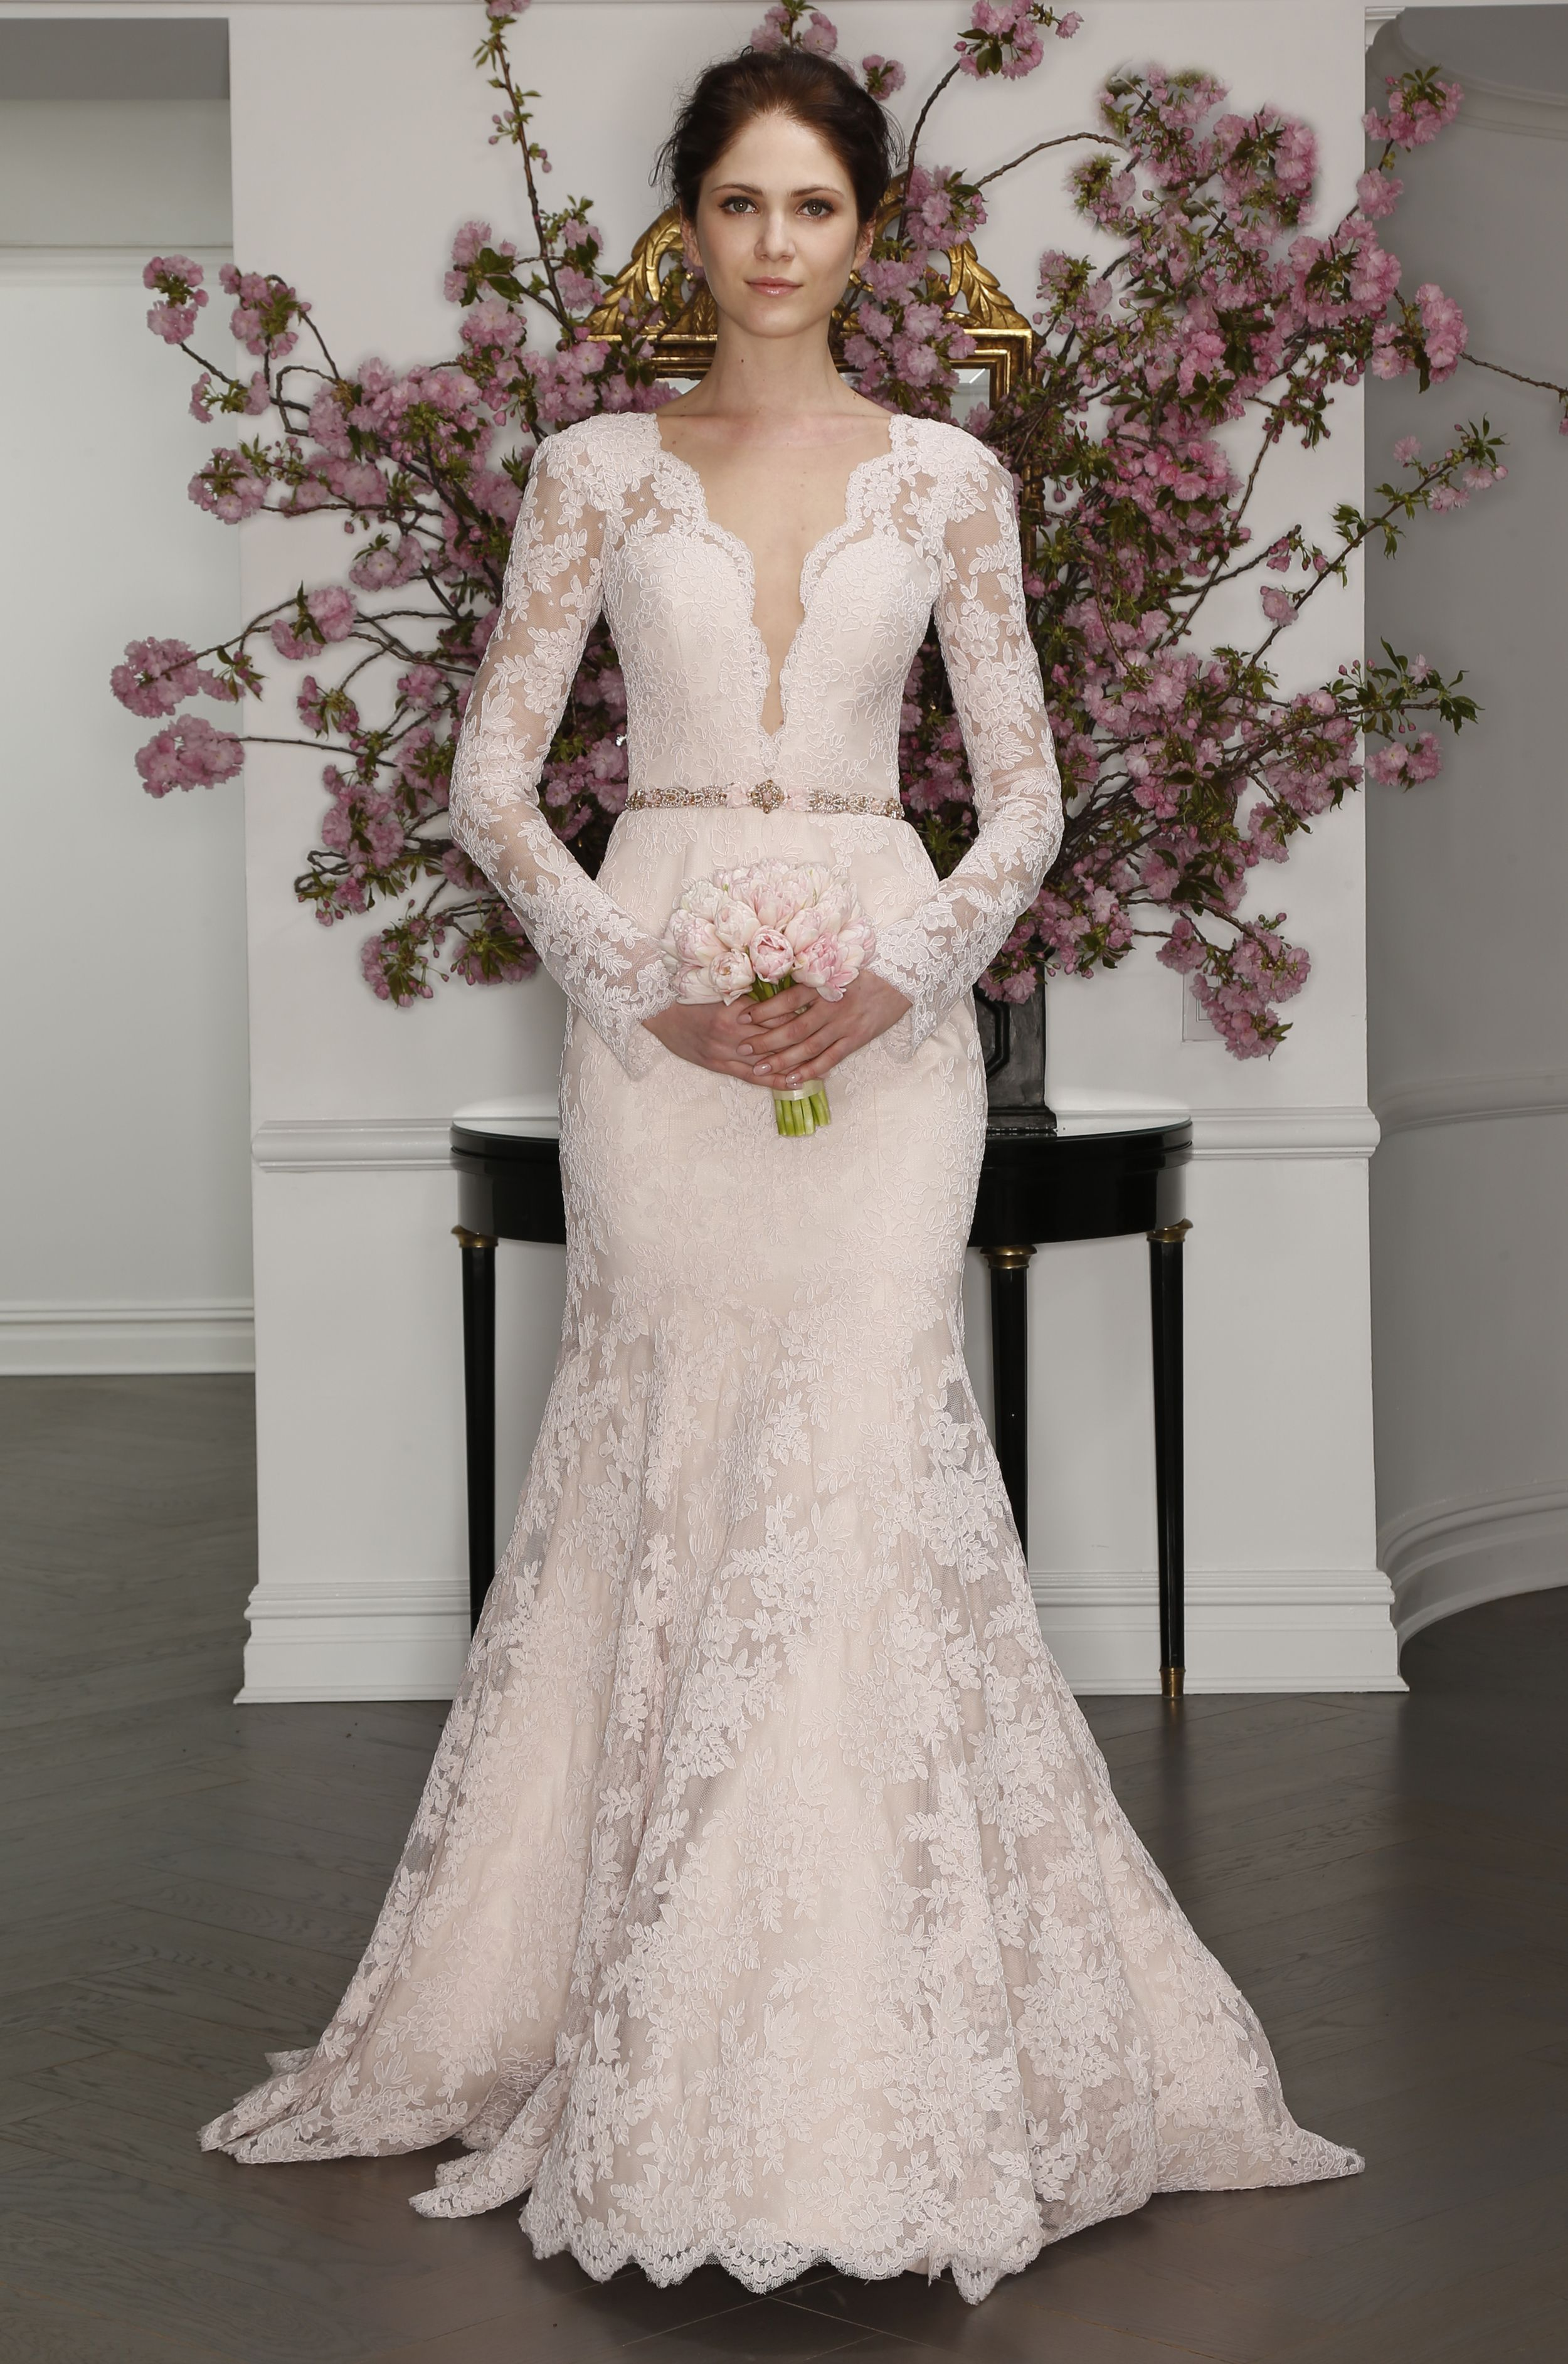 Long sleeved lace wedding dress  Pin by La Belle Mariée Bridal on Legends by Romona Kevesa at La